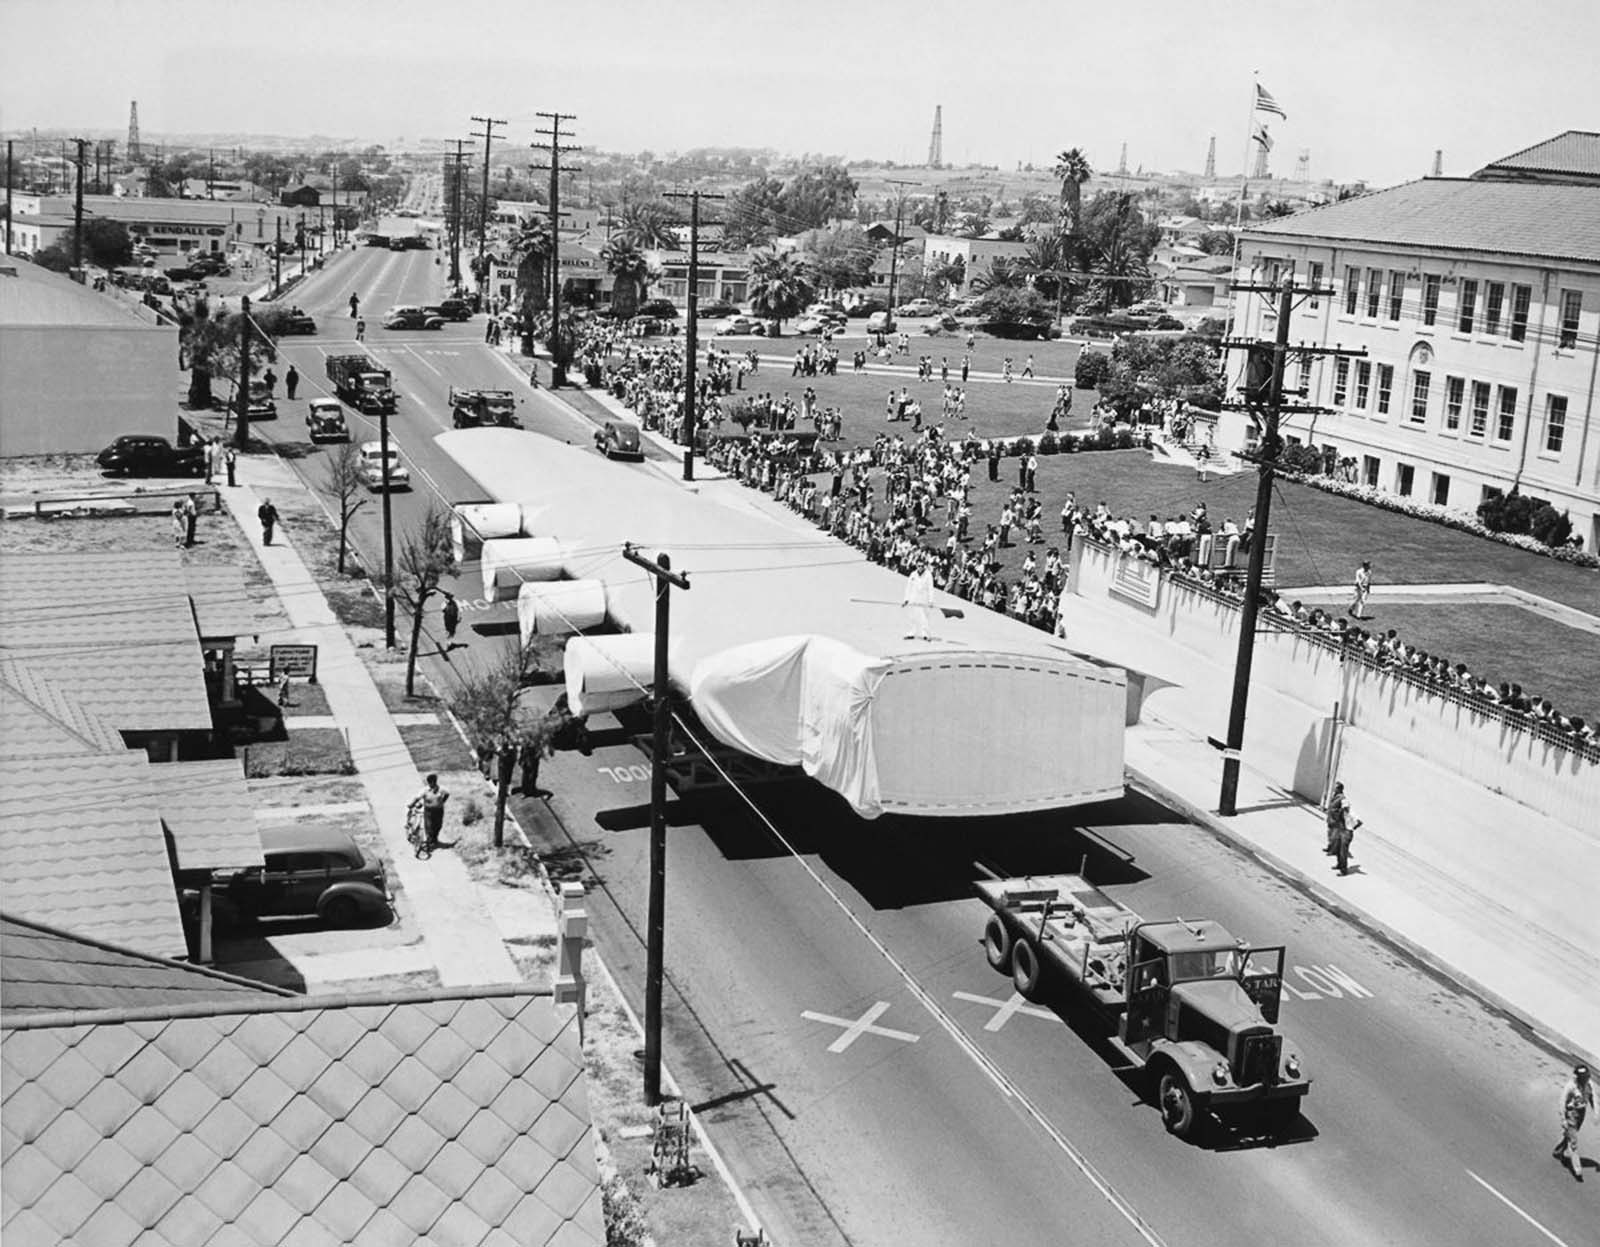 The huge wings being transported. 1946.